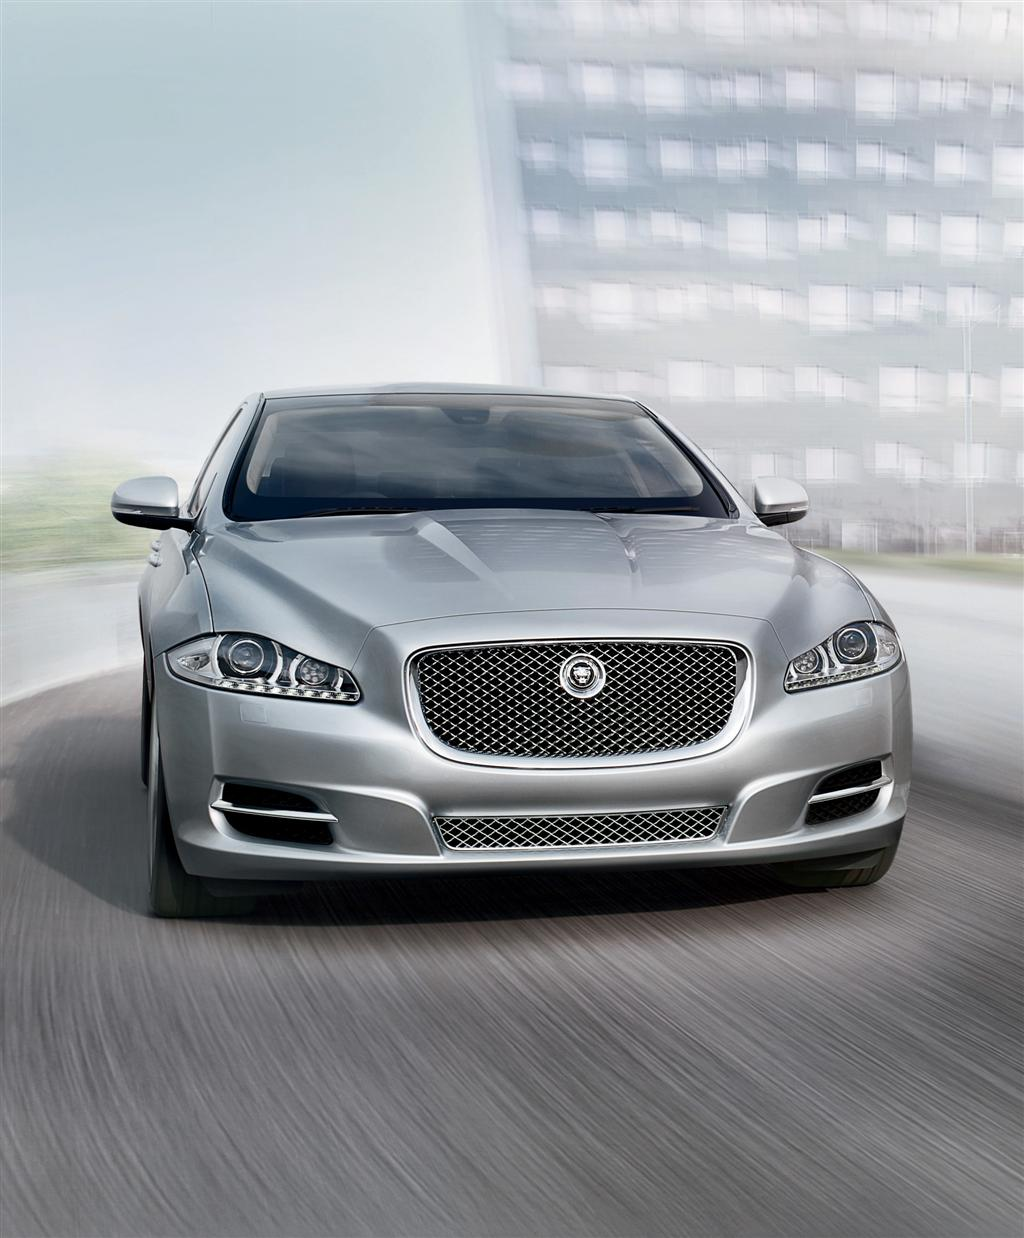 2010 Jaguar Coupe: 2010 Jaguar XJ Sentinel Image. Photo 2 Of 3